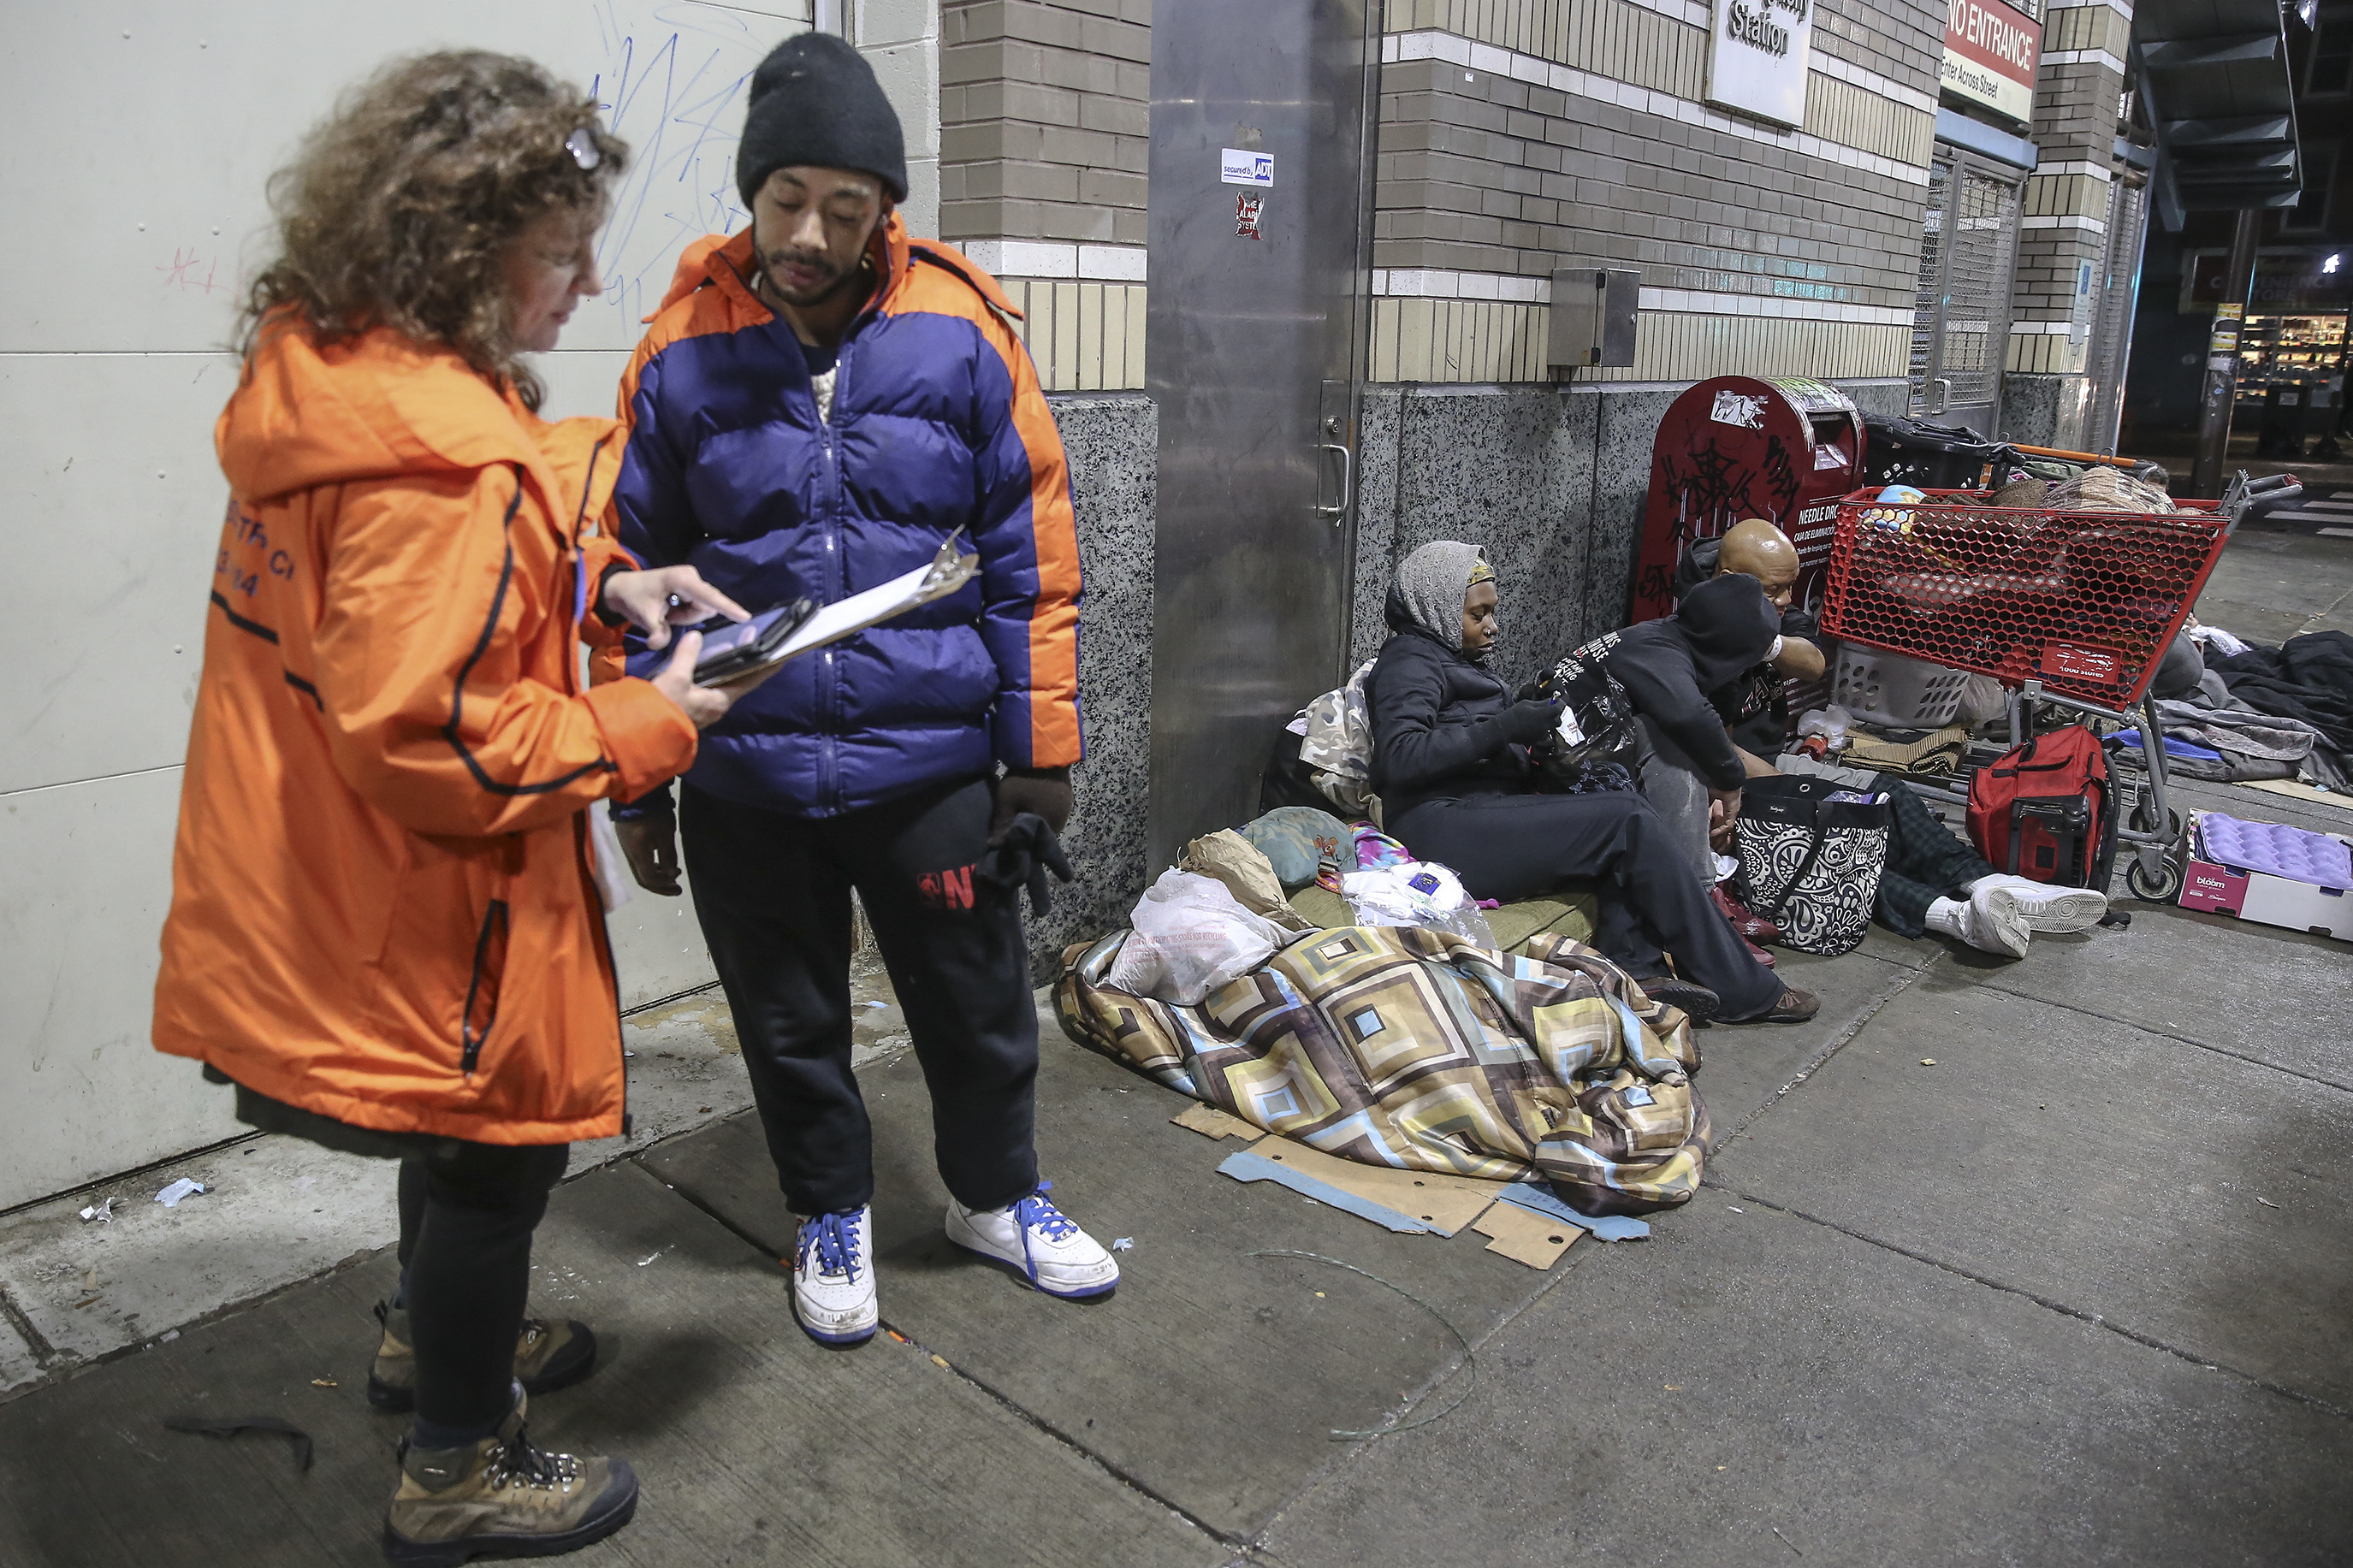 Philadelphia's annual homeless count reveals new realities about the